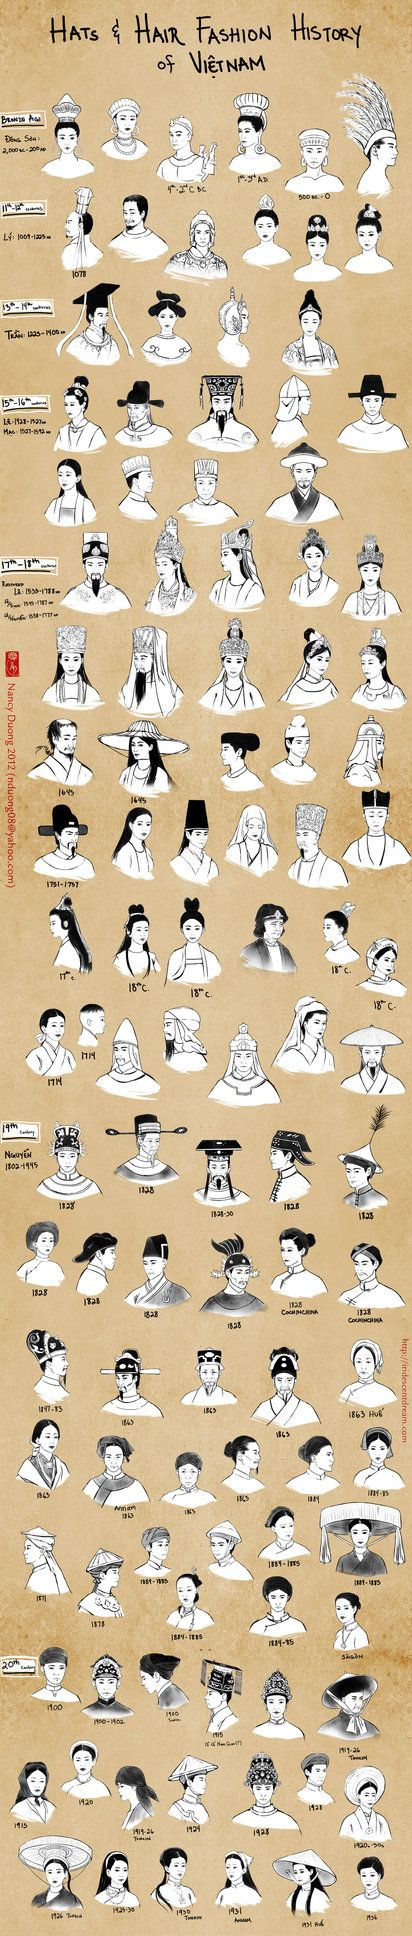 Hats and Hair Fashion History: Vietnam by lilsuika on DeviantArt